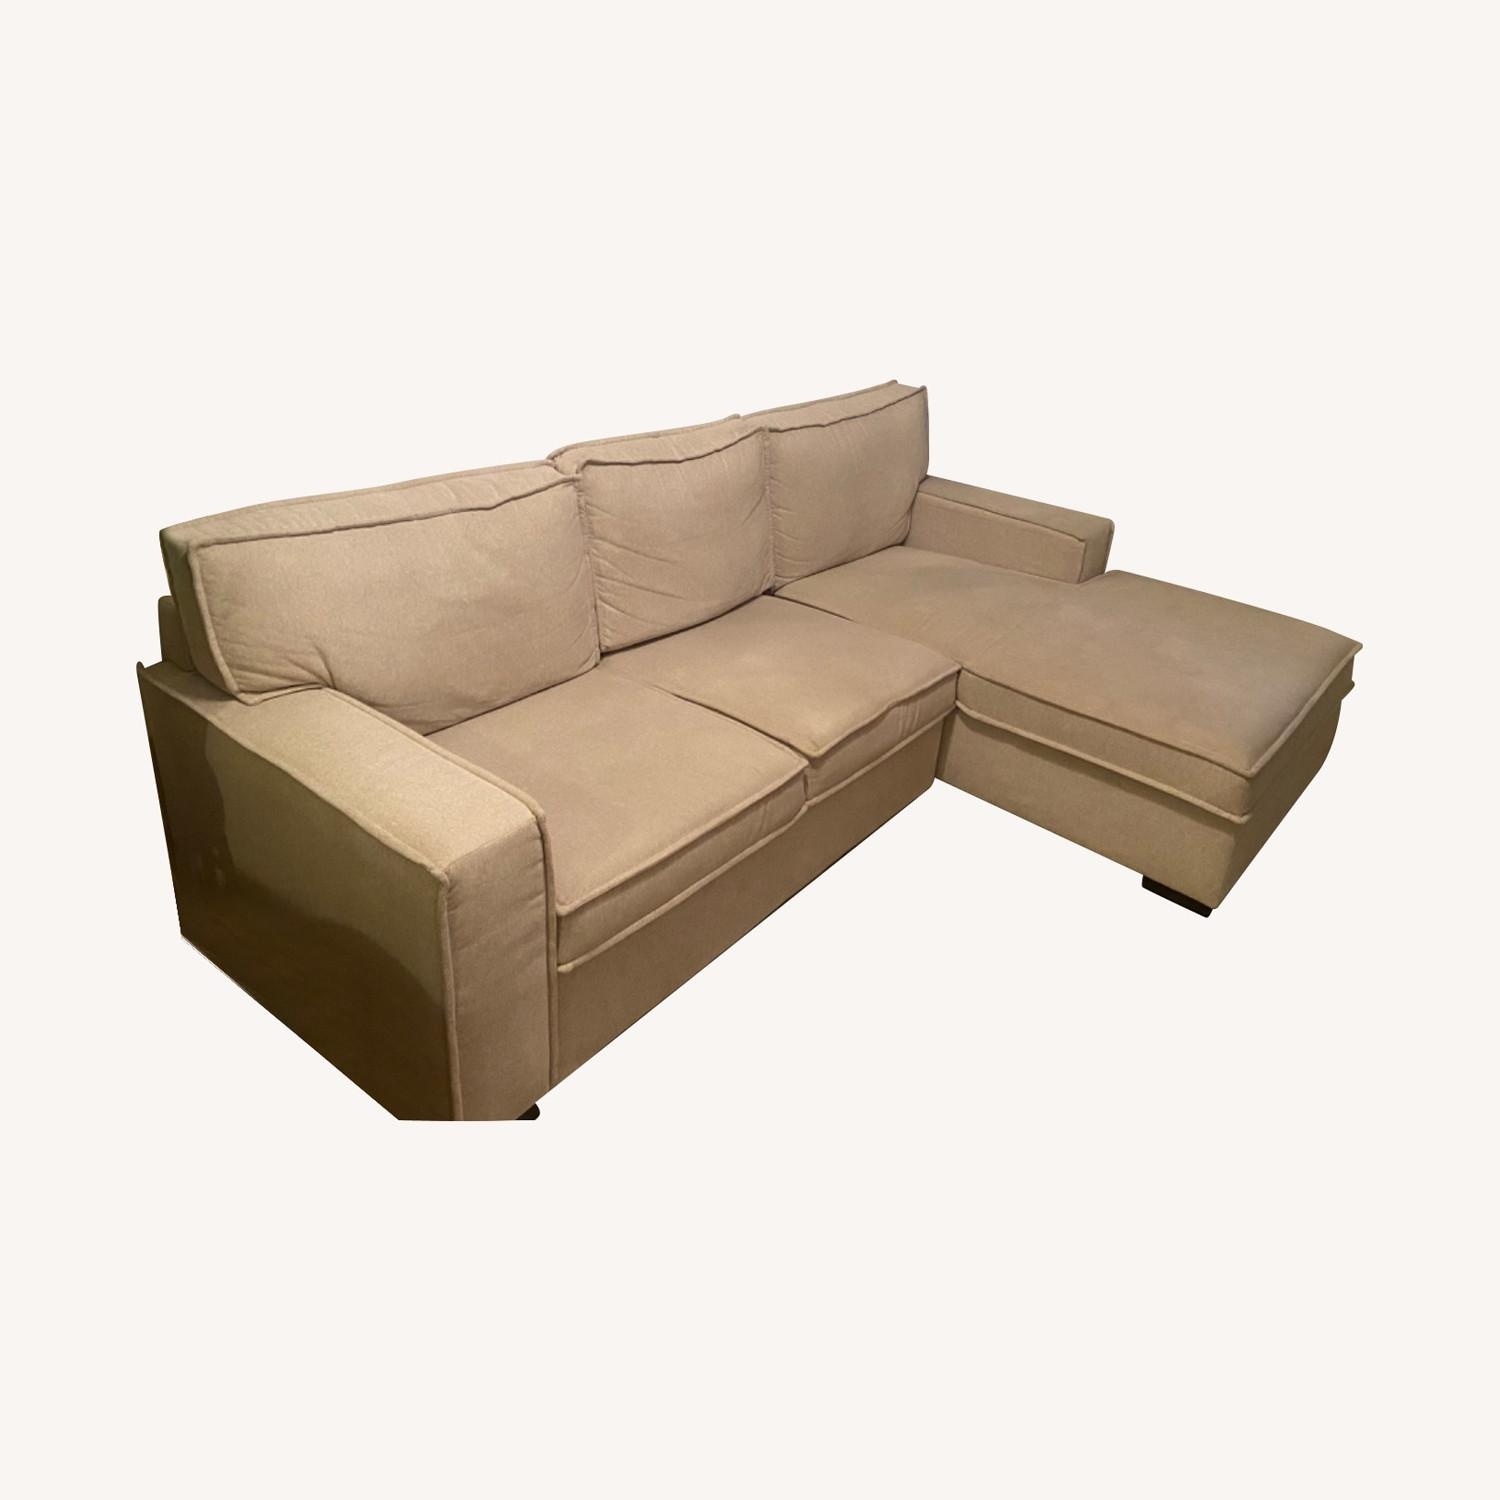 Bob's Discount Sectional with Storage - image-0